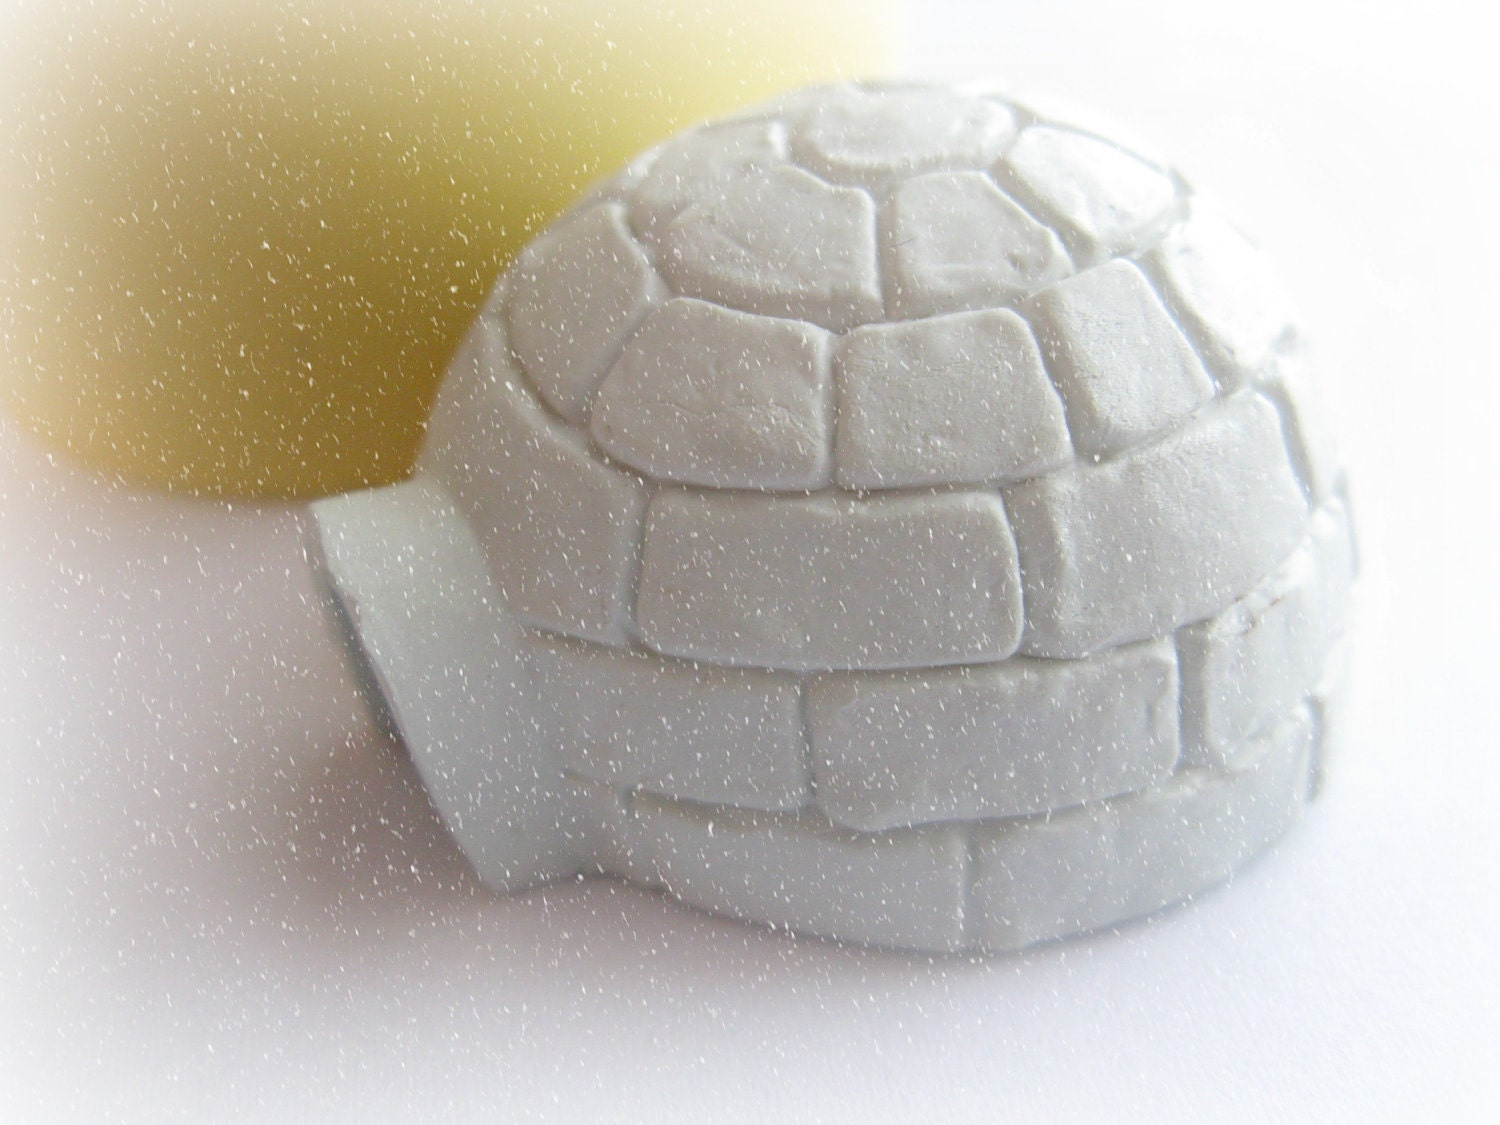 igloo arctic mold north pole clay fondant resin mold textured flocked mold